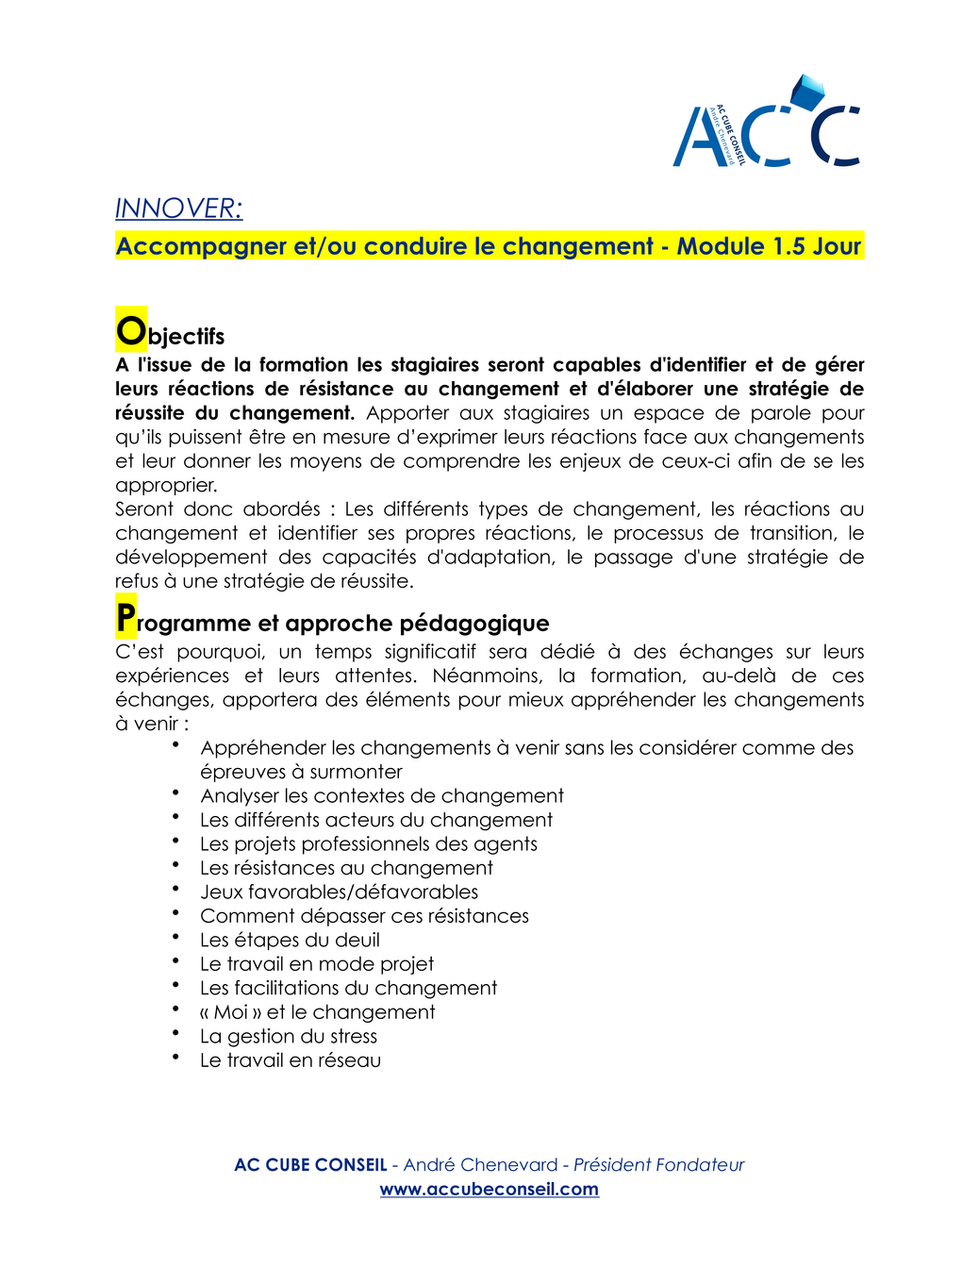 AC CUBE CONSEIL - INNOVER_Page_01.png